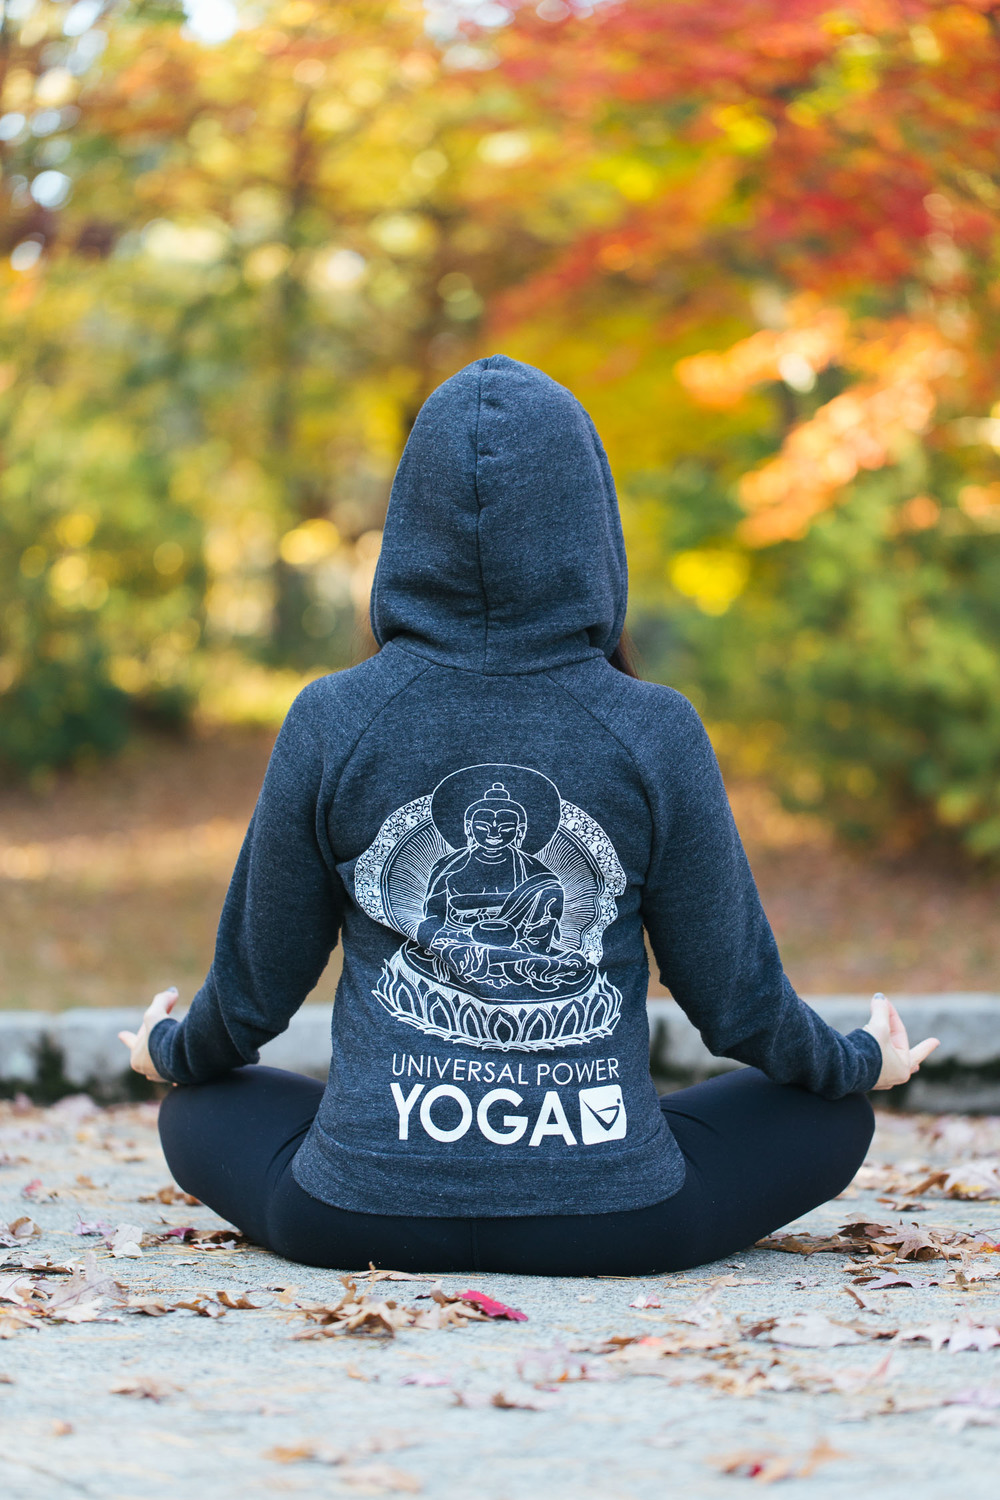 universal-power-yoga-teacher-training-norwood-ma-yoga-photographer-5567.jpg